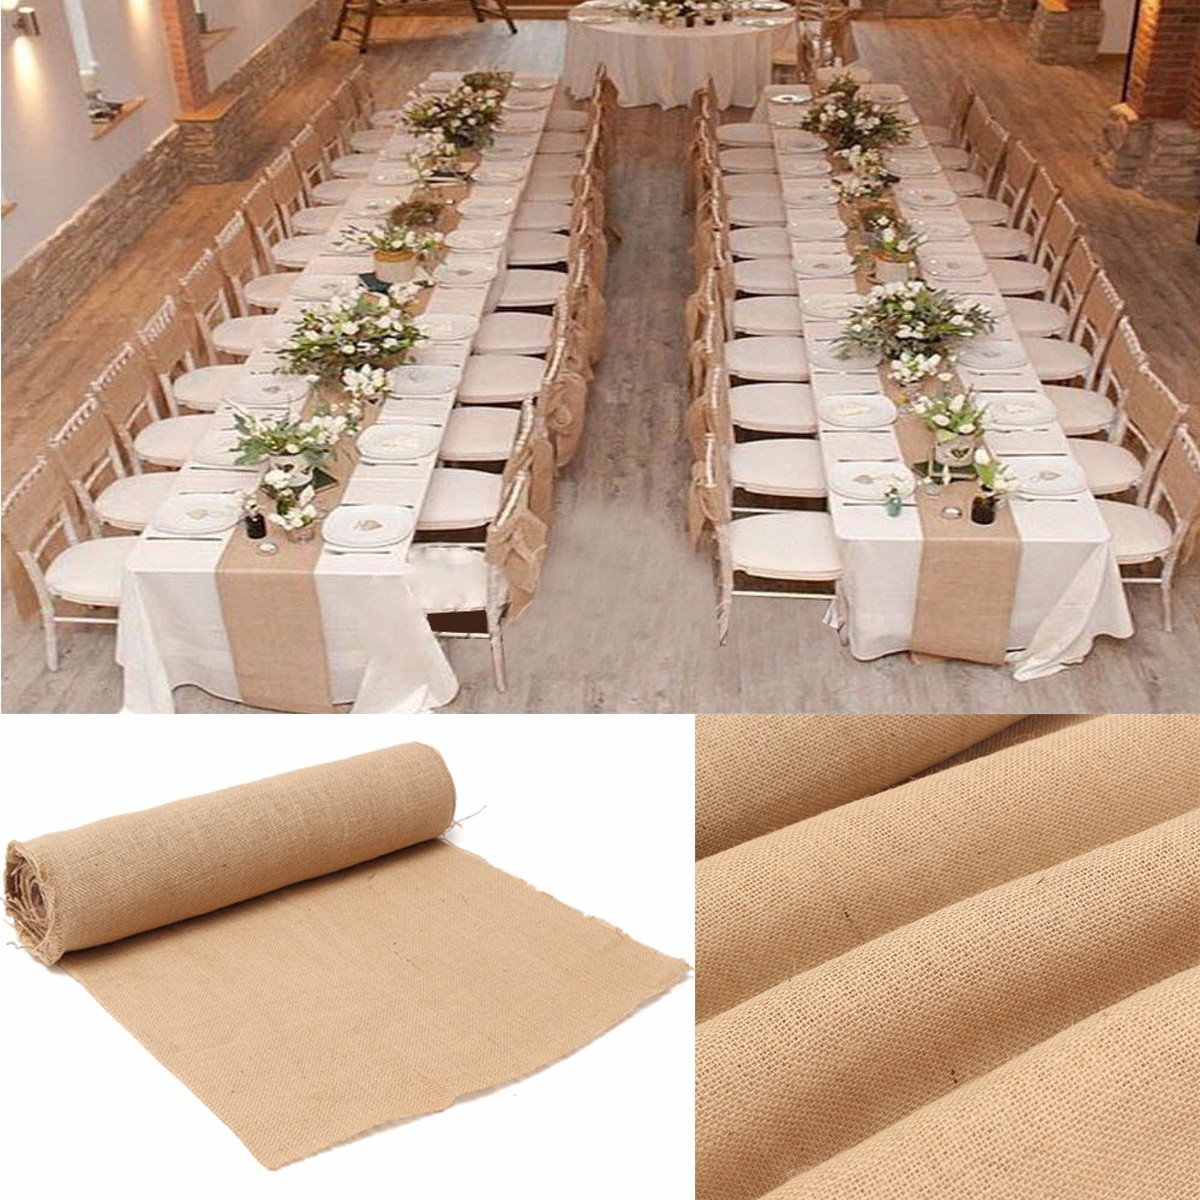 10mx50cm chemin de table jute toile dentelle d coration mariage nappe napperon achat vente. Black Bedroom Furniture Sets. Home Design Ideas